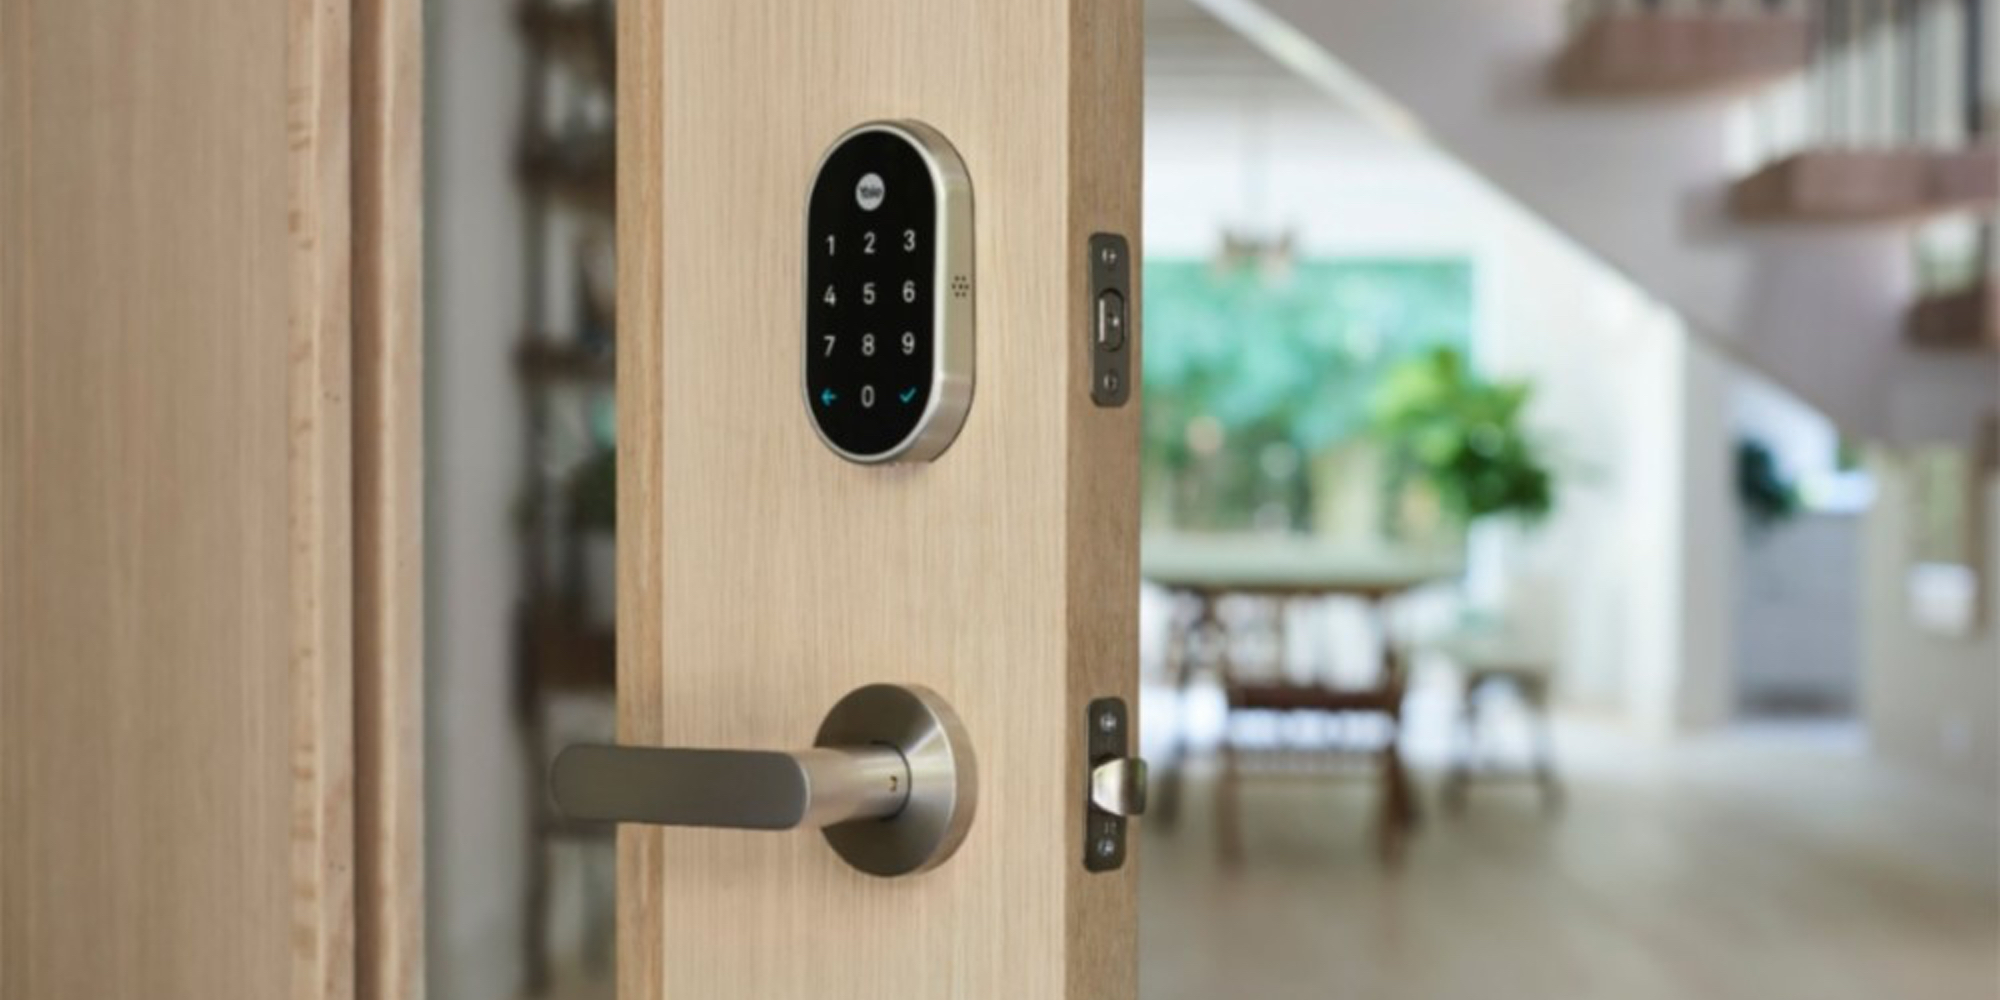 Secure your home w/ the Nest x Yale Smart Lock & Nest Connect for $210 (25% off)